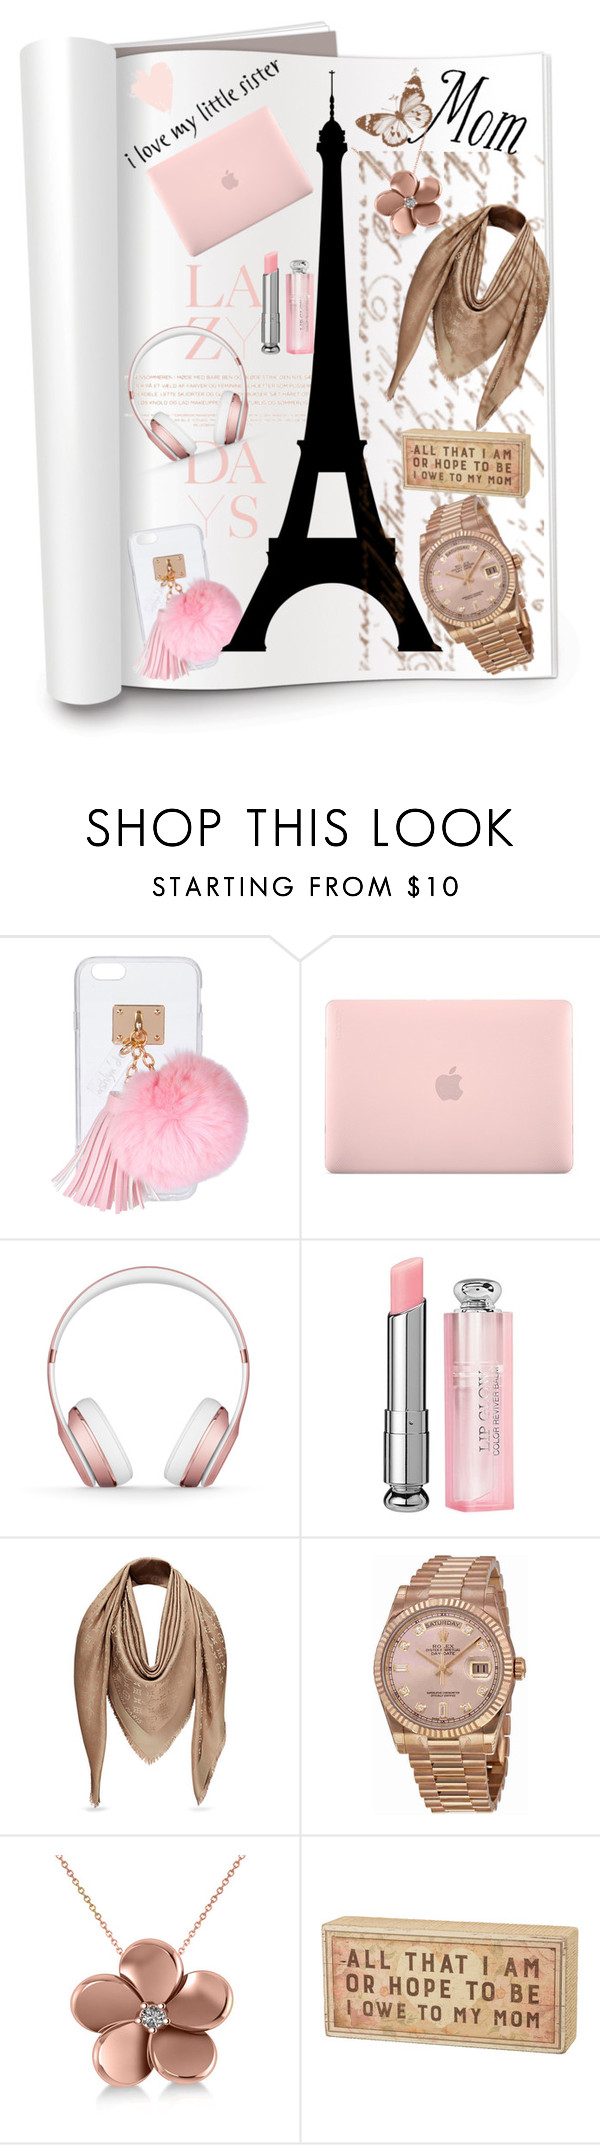 """""""mom n sis gifts"""" by b-a-hanen on Polyvore featuring Lazy Days, Ashlyn'd, Incase, Beats by Dr. Dre, Christian Dior, Rolex, Allurez, Primitives By Kathy and giftguide"""